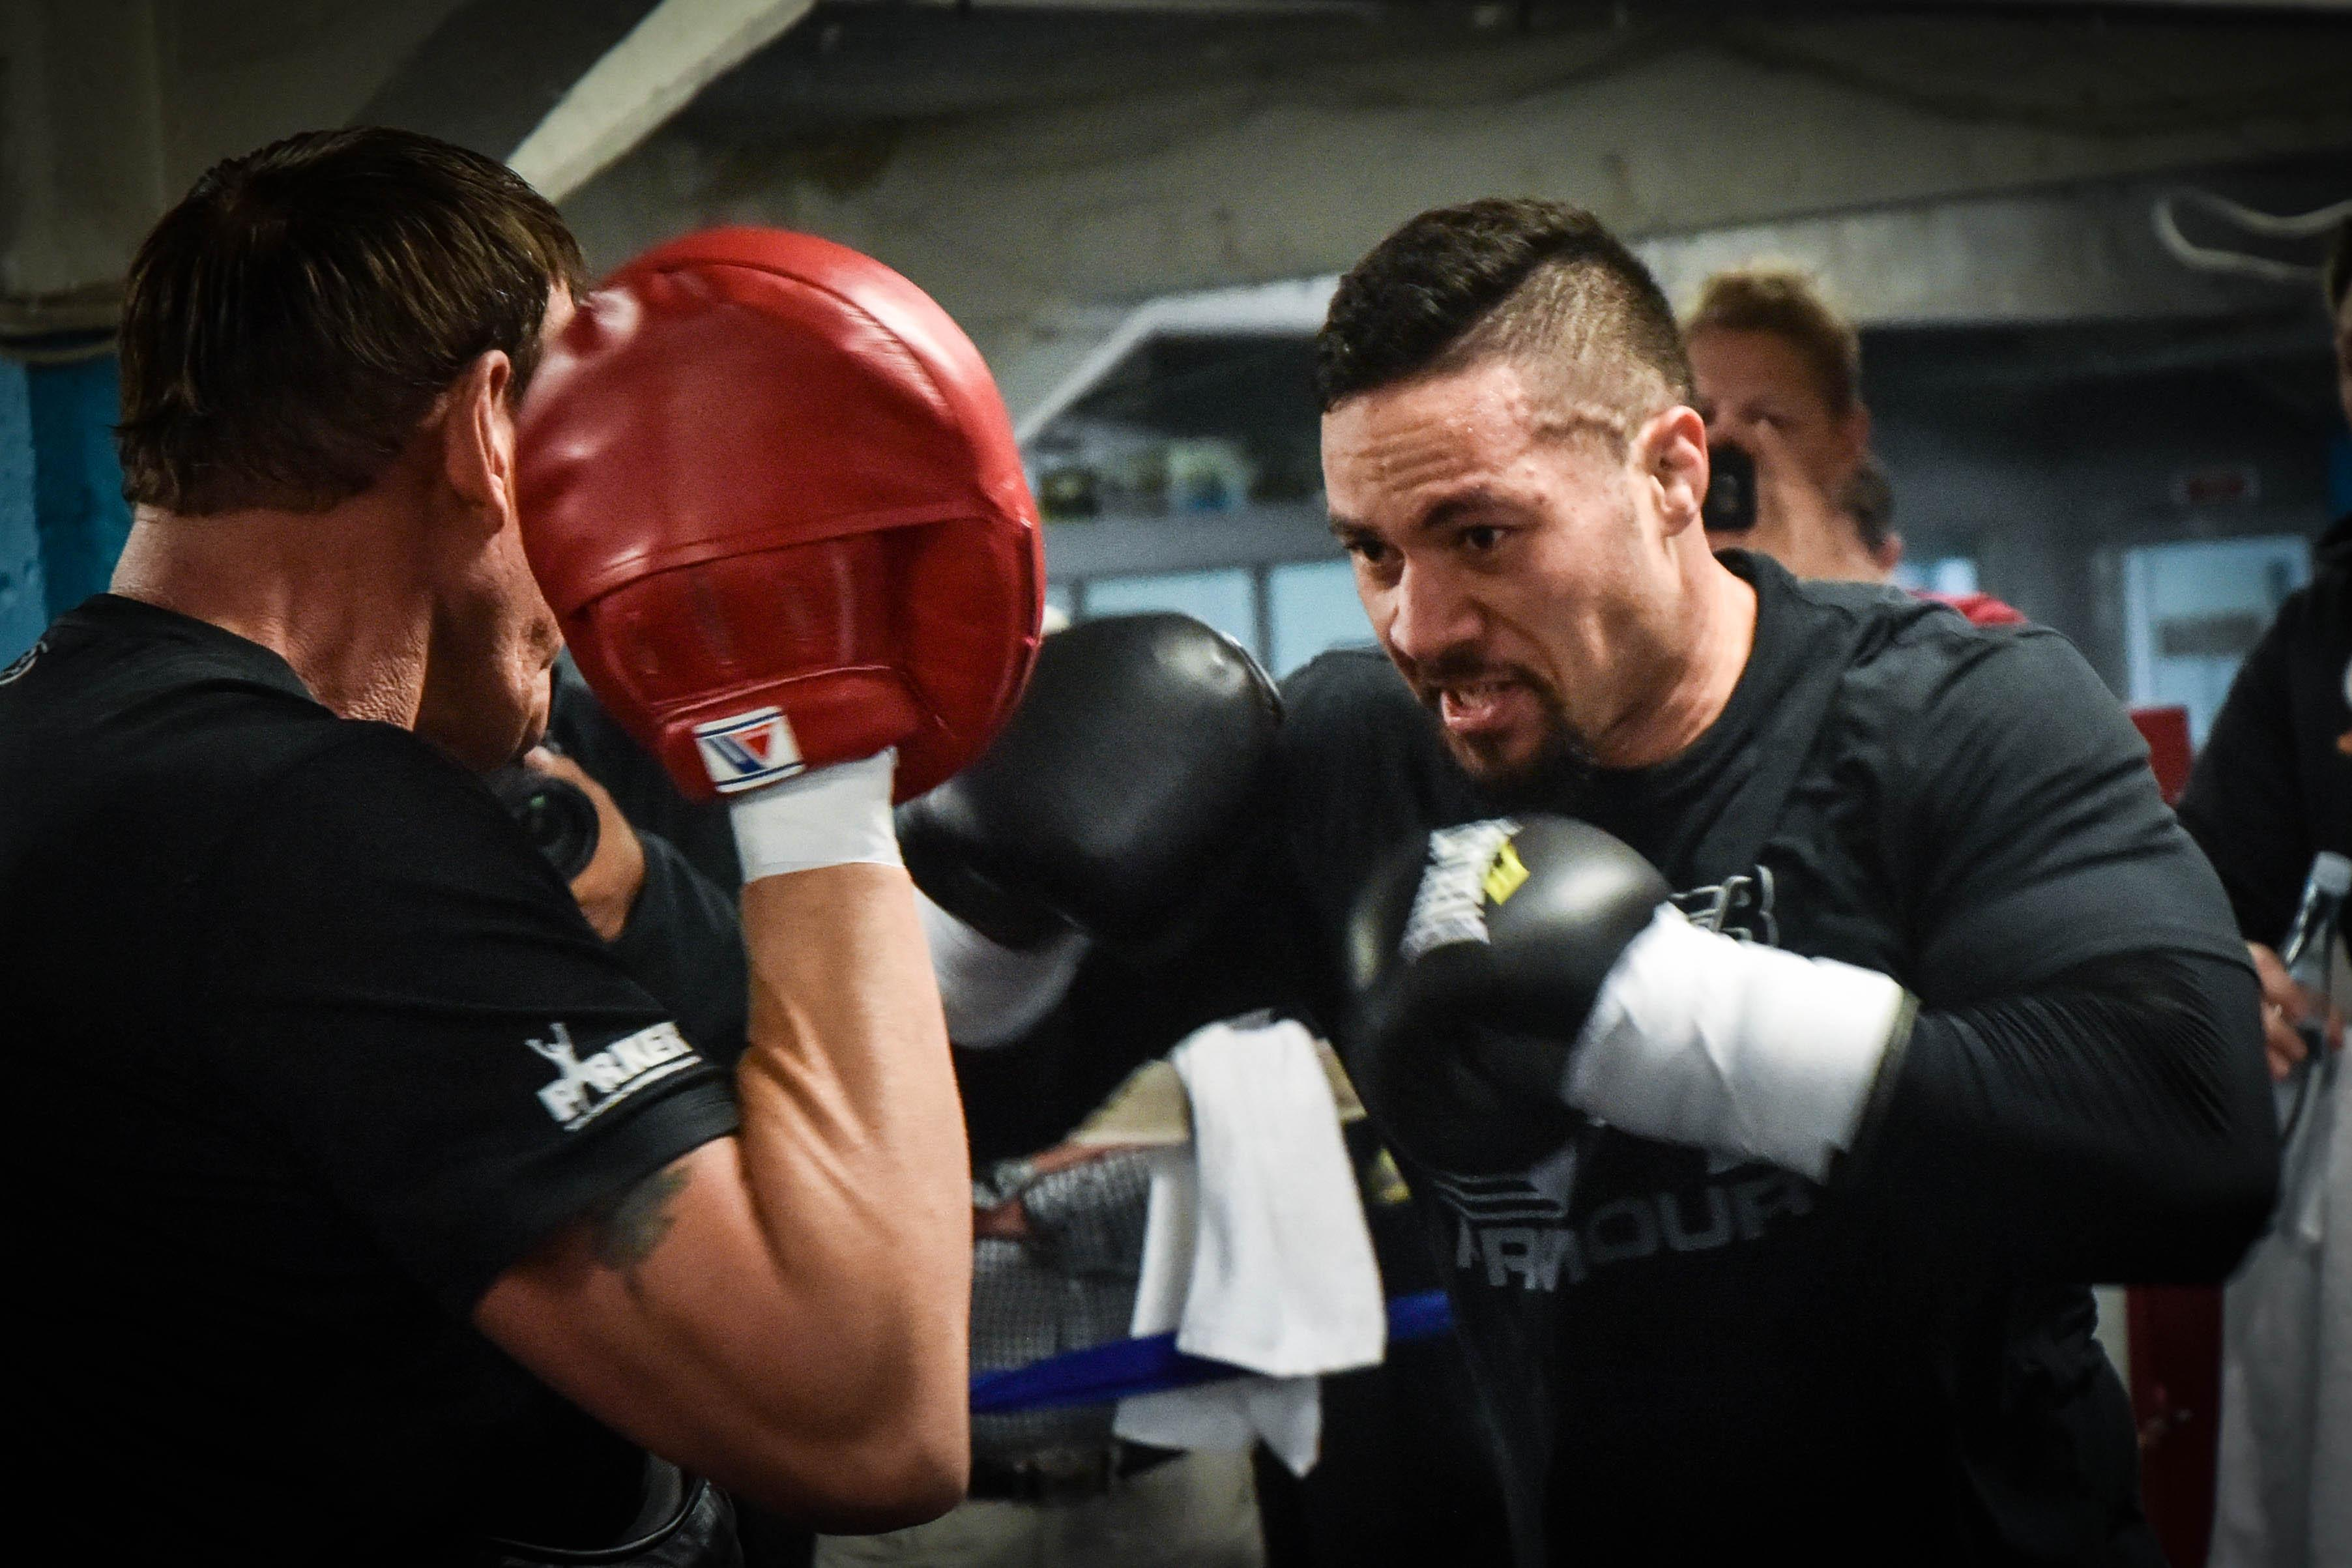 Joseph Parker will be a more powerful puncher in time to face Anthony Joshua, his camp claim